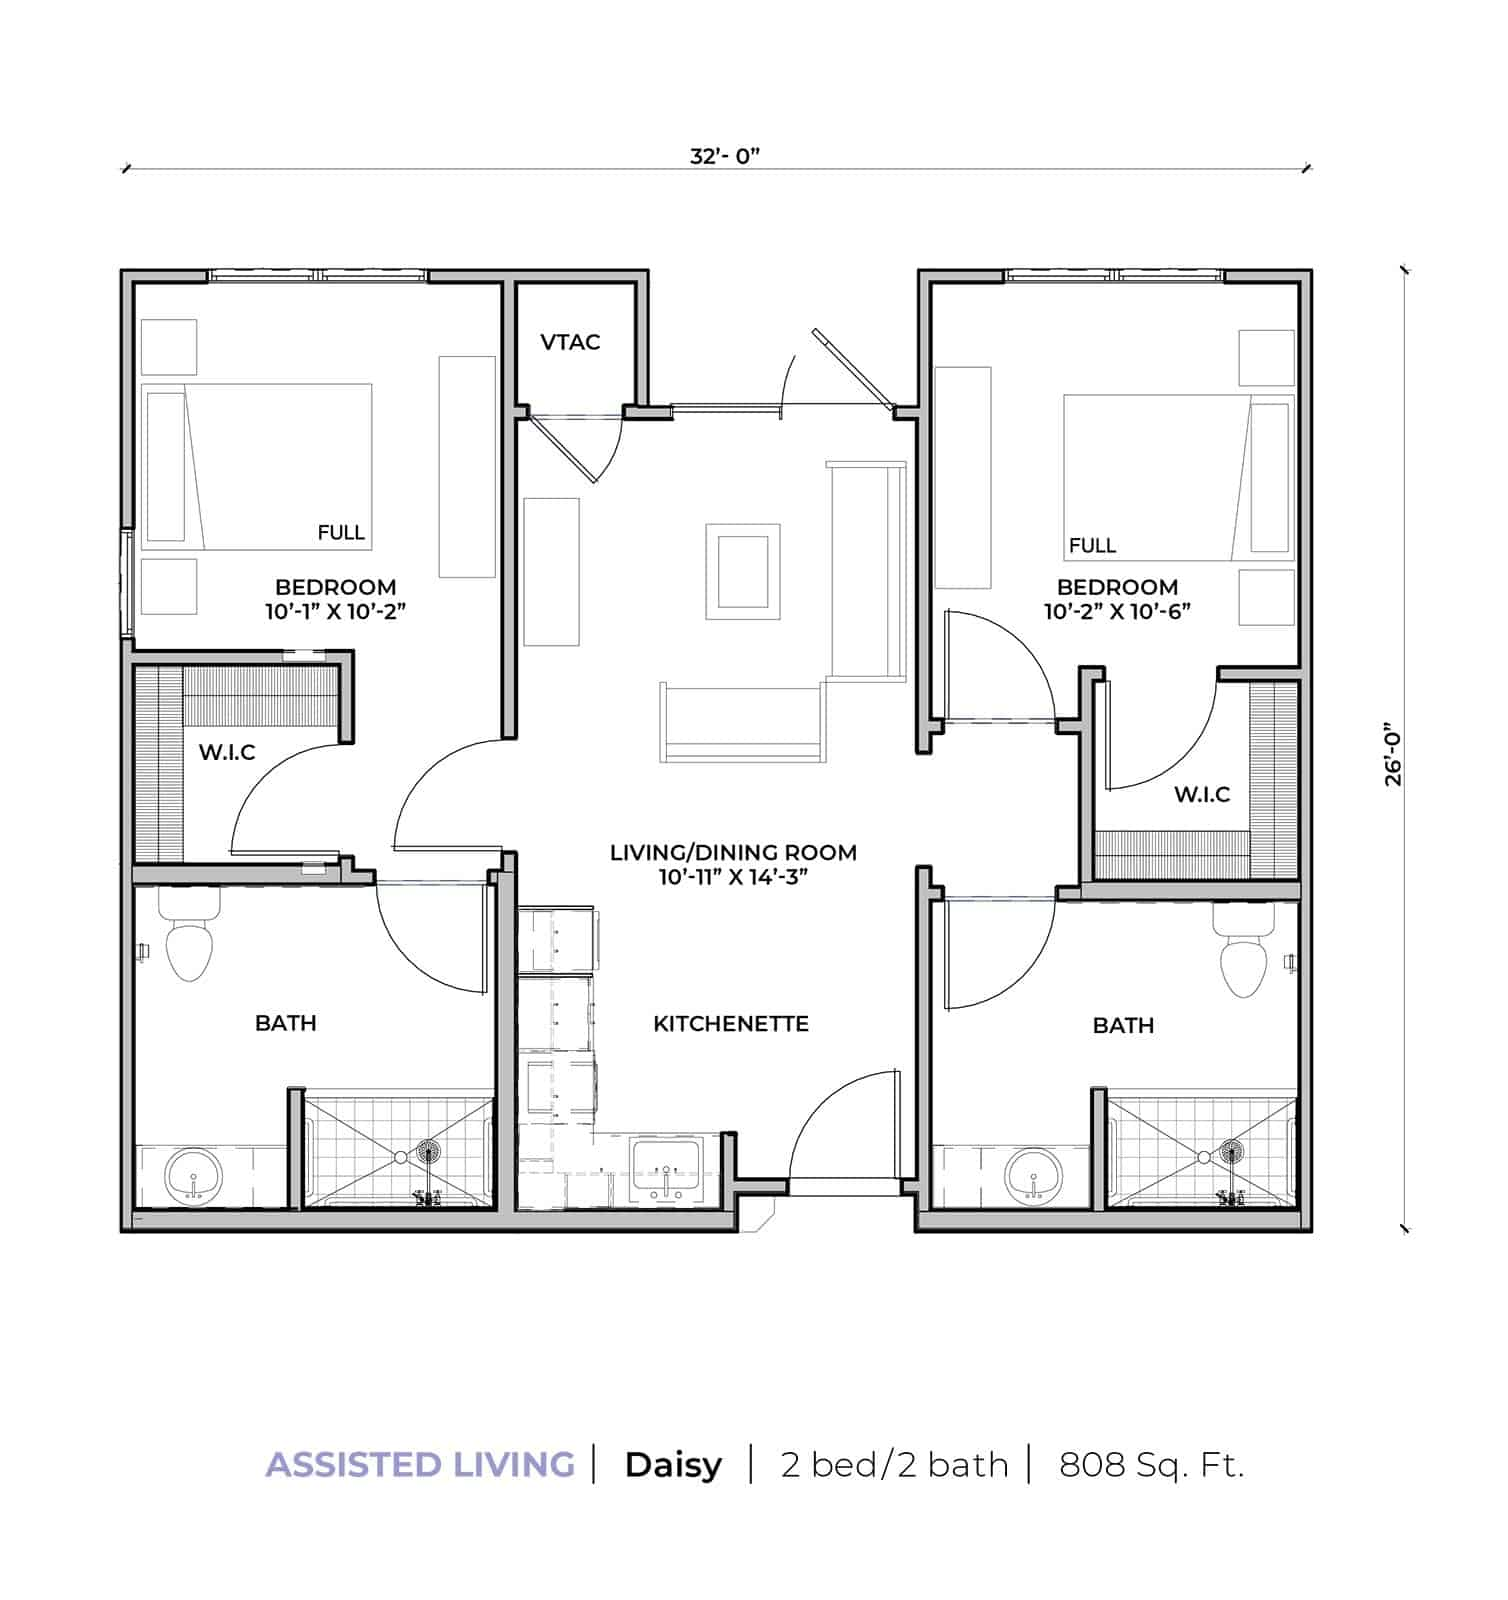 Assisted living Daisy two-bedroom two-bathroom apartment floor plan